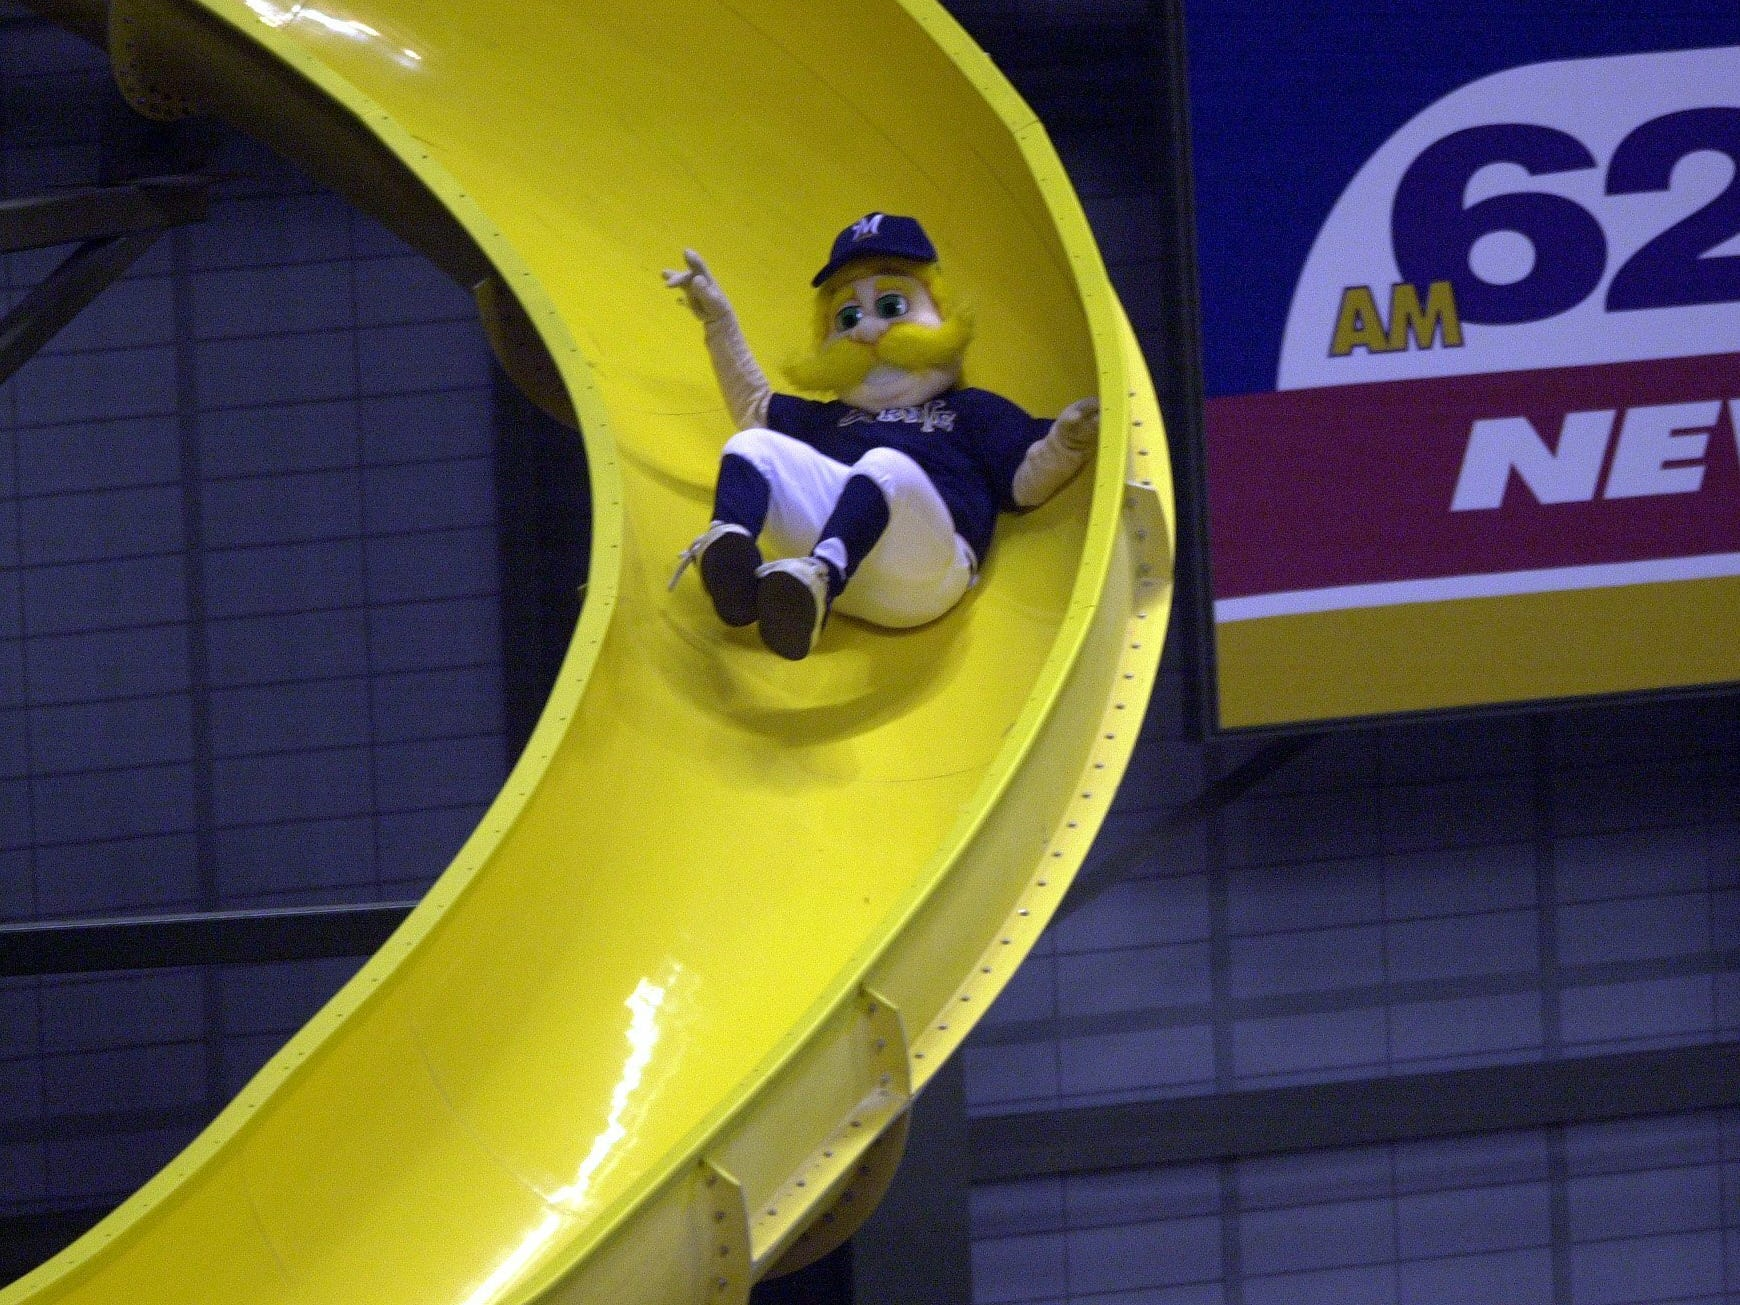 """Bernie Brewer takes his first slide during an official game on April 6, 2001, at the inaugural opening day at Miller Park. Instead of a chalet with a simple slide to a mug of beer, Bernie in Miller Park has his own """"dugout,"""" with a corkscrew slide leading to a platform. This photo was published in the April 7, 2001, Milwaukee Journal Sentinel."""